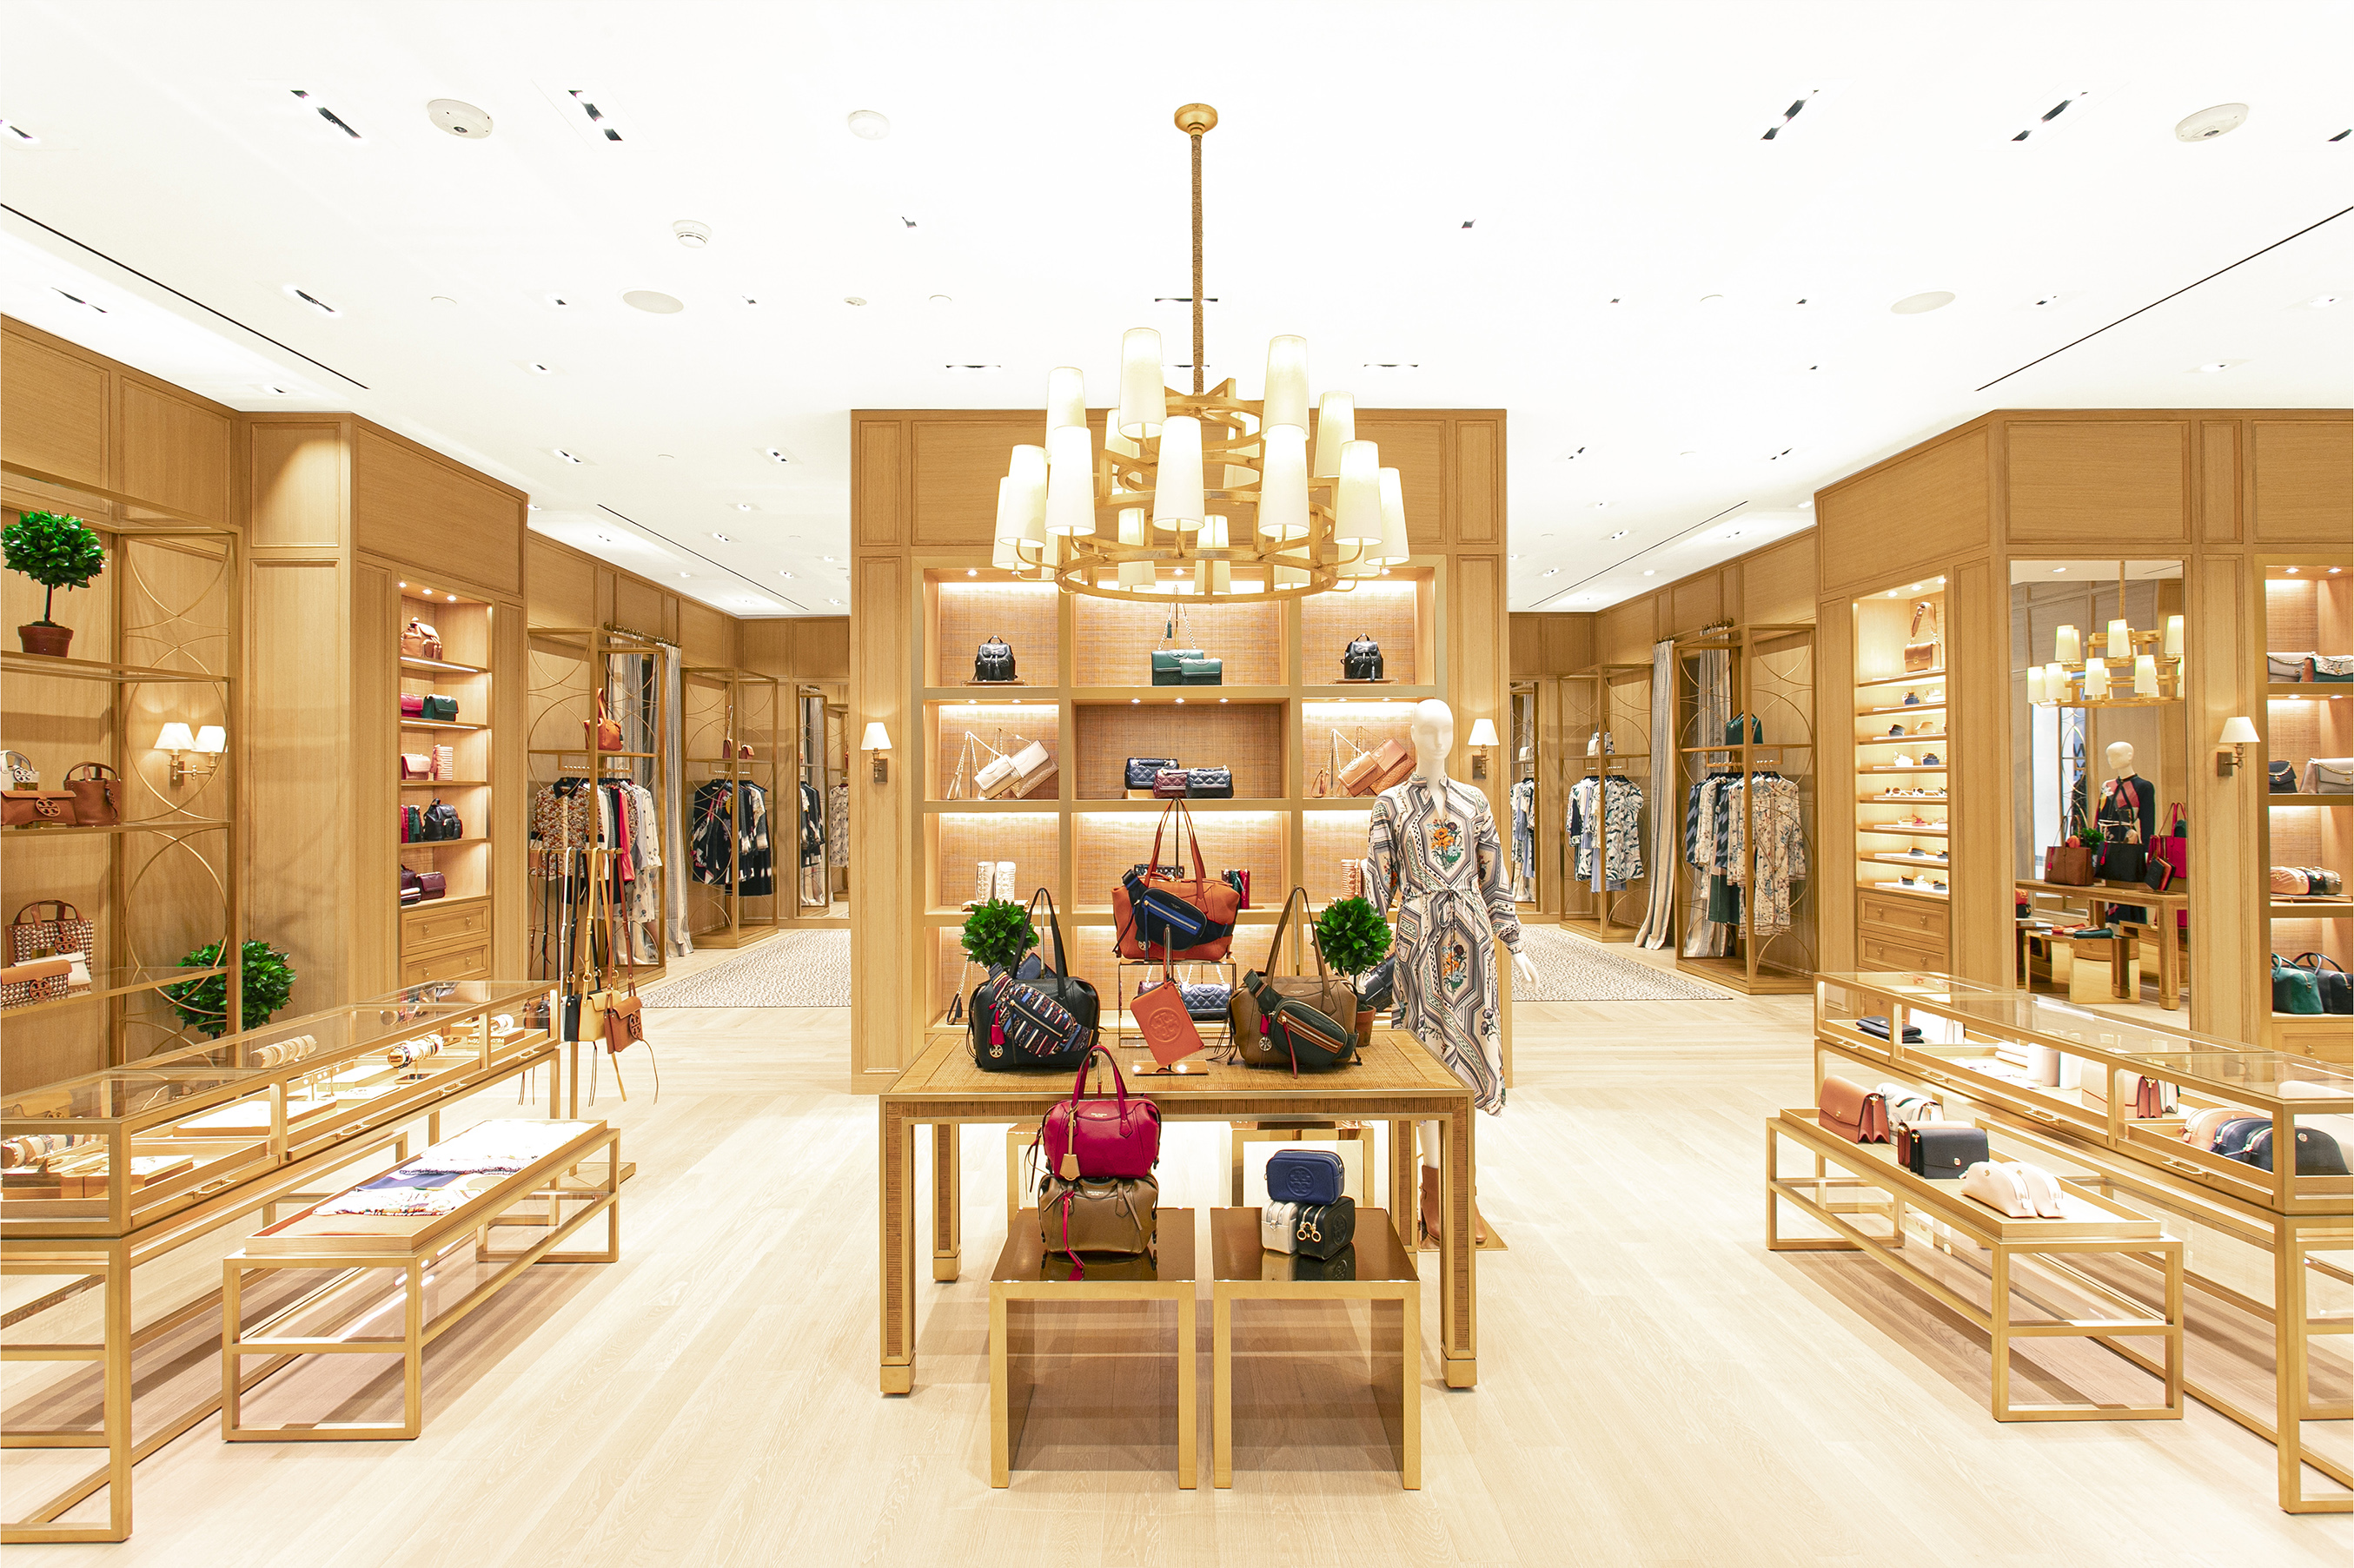 TORY BURCH OPENS A FLAGSHIP BOUTIQUE IN JAKARTA